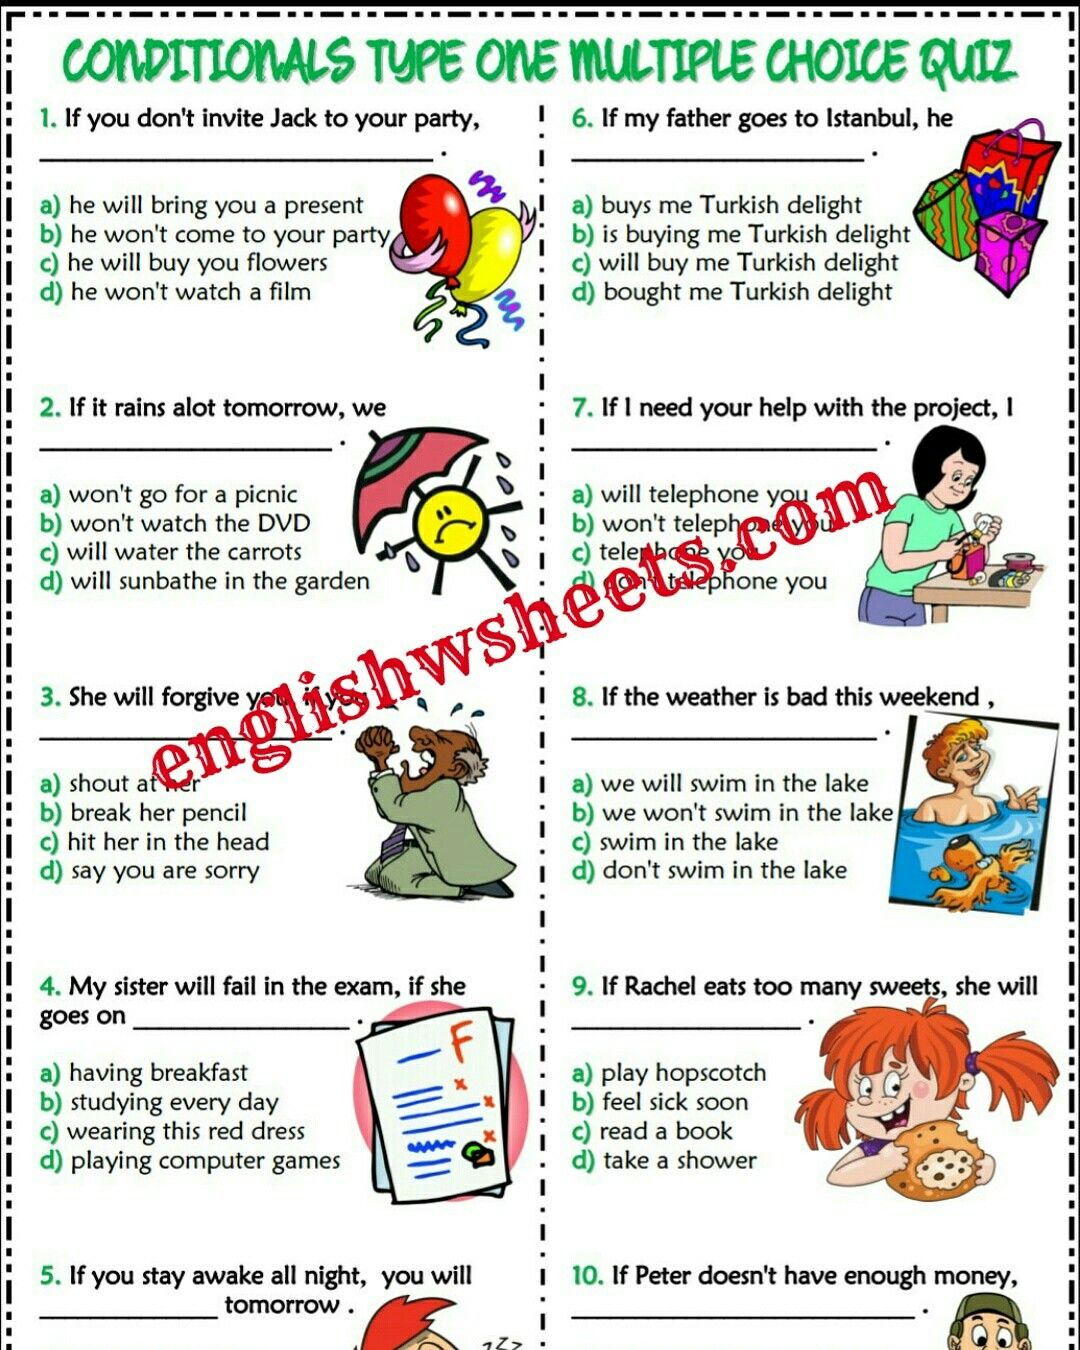 ESL Printable Grammar Vocabulary Worksheets Exercises Handouts Quizzes  Activities Questions English Lesson Materials Resources Reading  Comprehension for ...